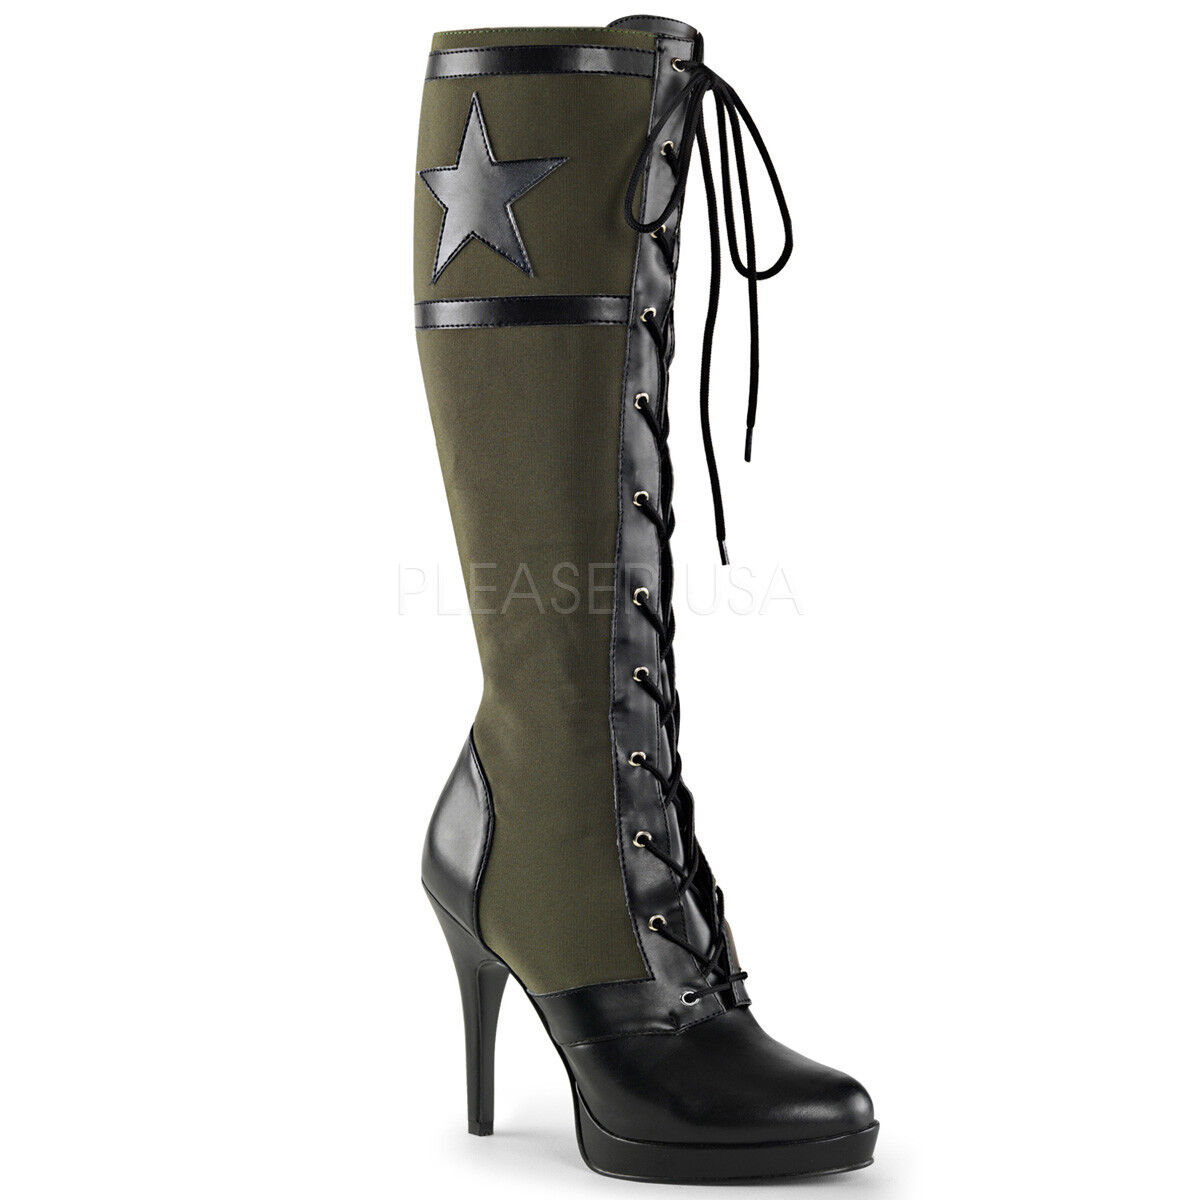 risparmia fino al 50% 4.5  Army verde verde verde Knee High Military Stars Stripes Mini Platform Knee stivali 6-12  negozio d'offerta